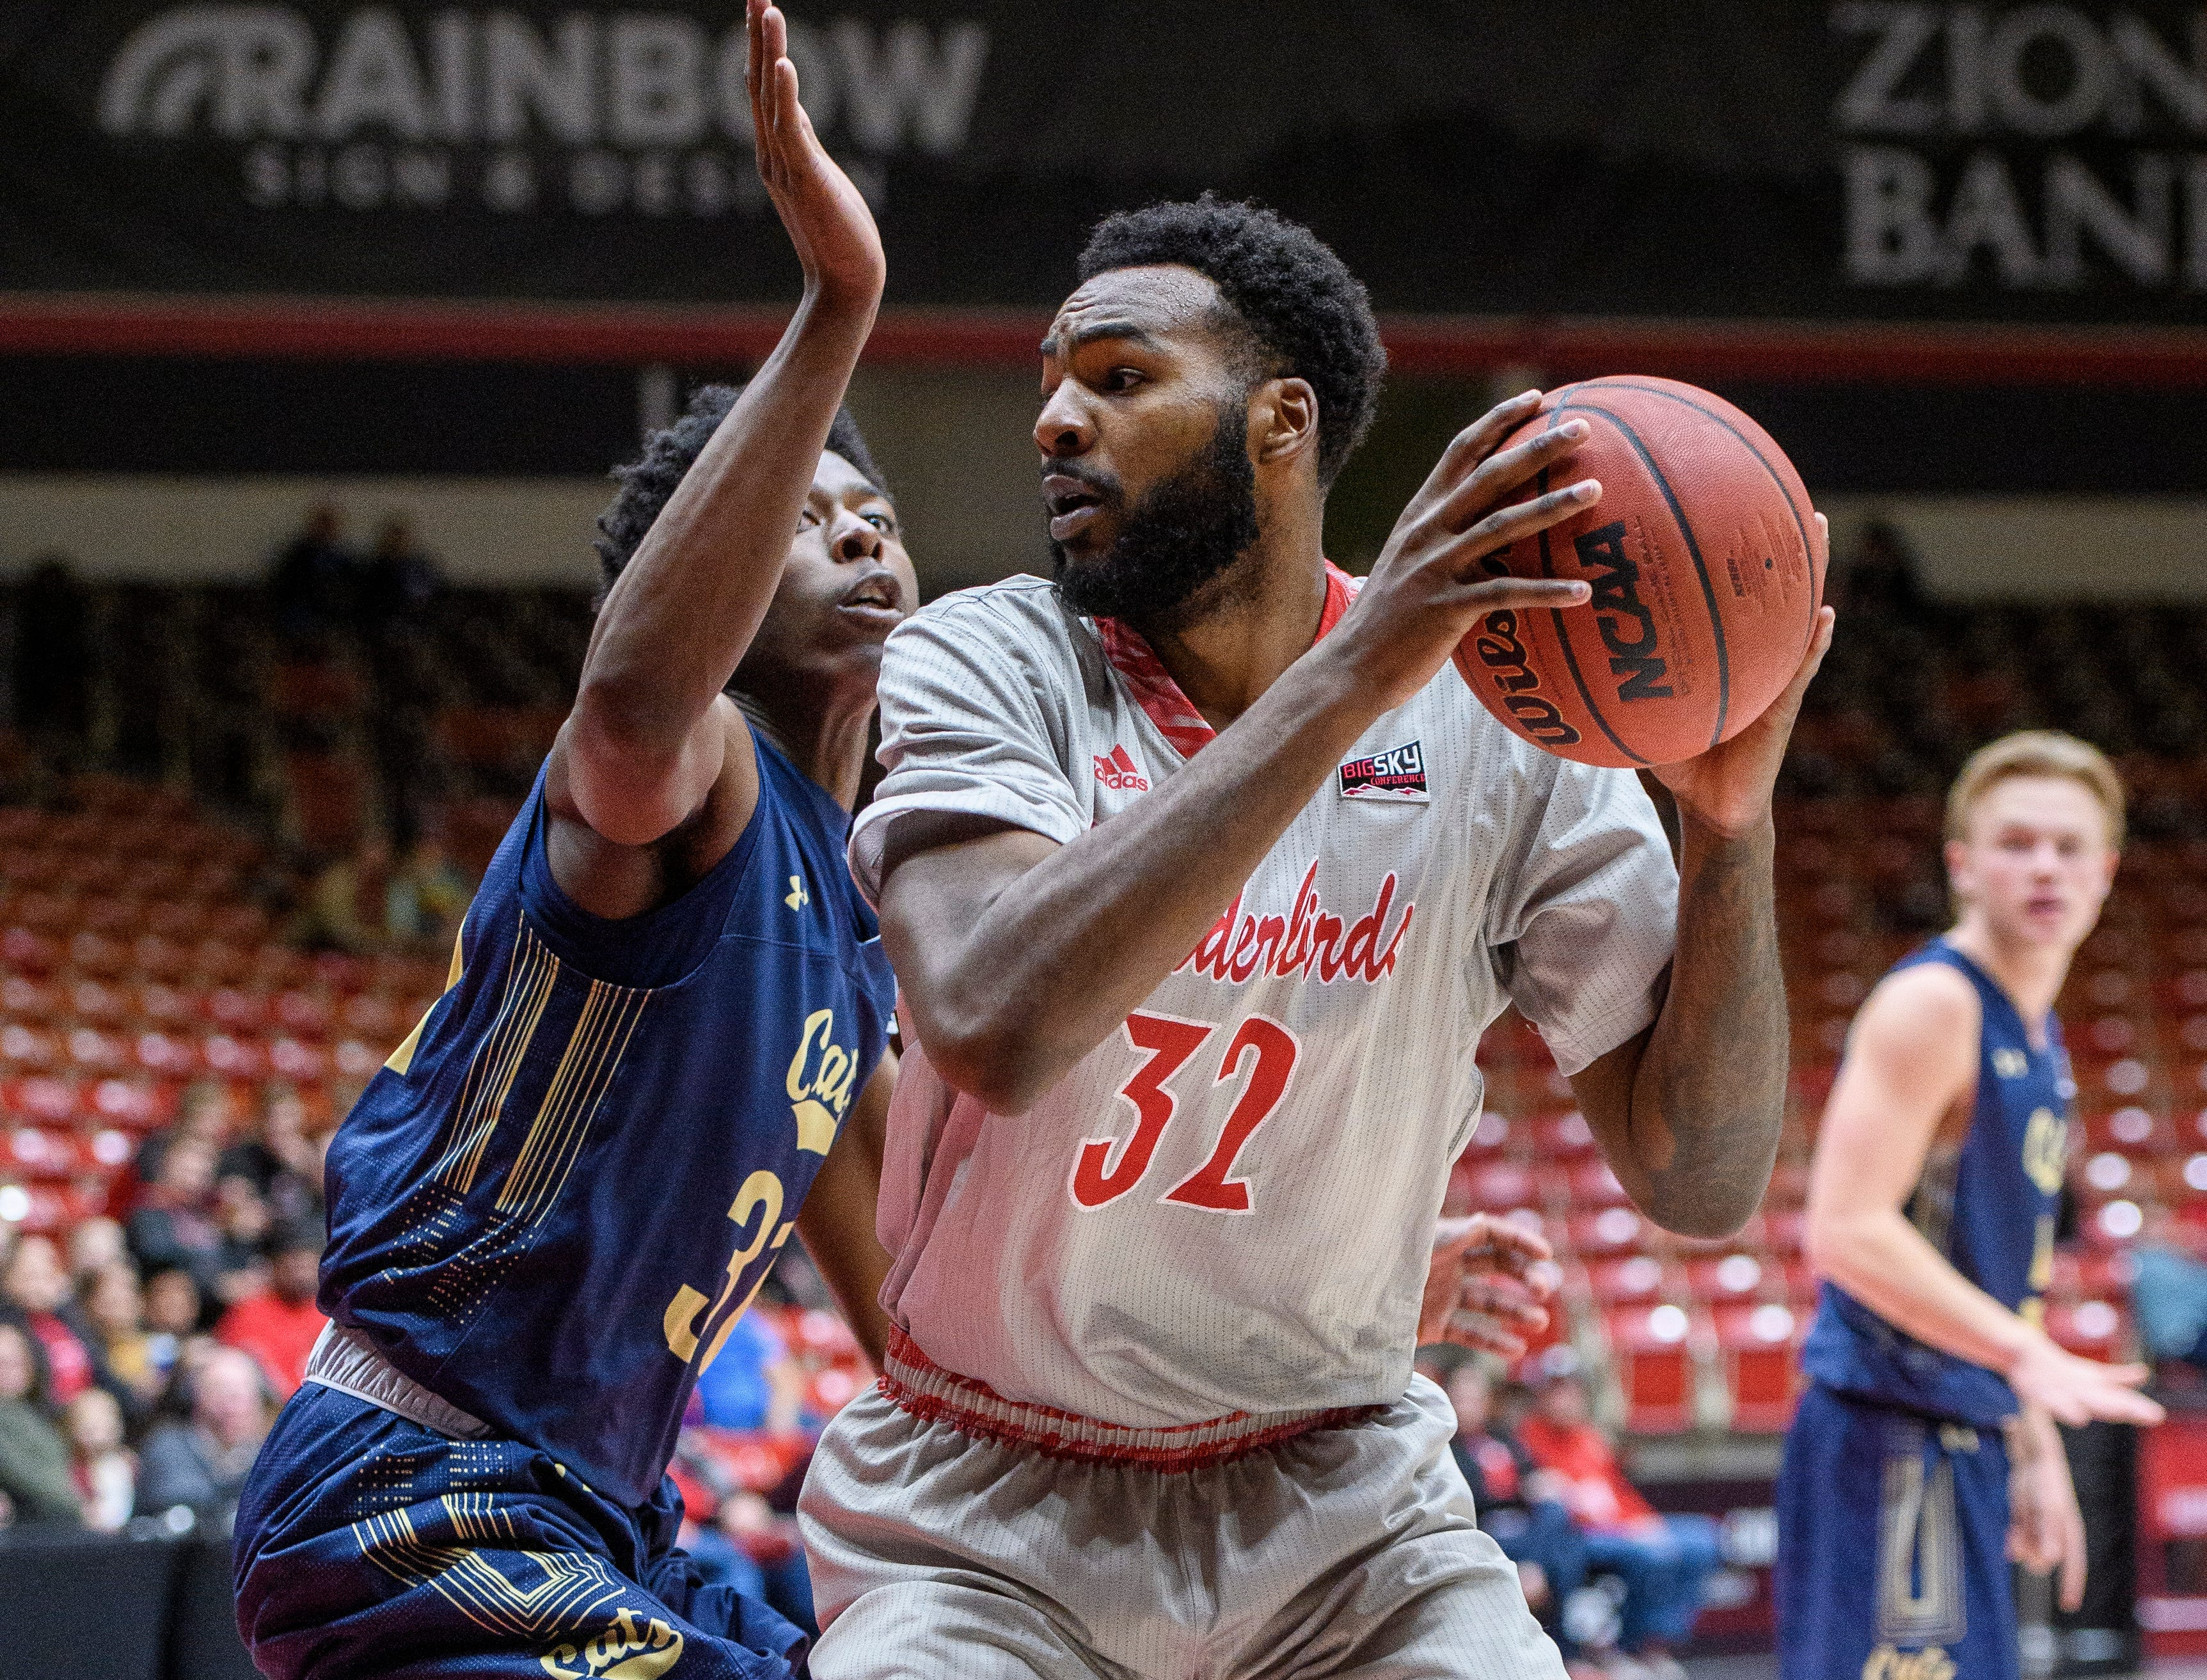 Southern Utah University junior Andre Adams (32) fights his way towards the basket during the game against Montana State in the America First Event Center Saturday, December 29, 2018. SUU lost, 92-62.